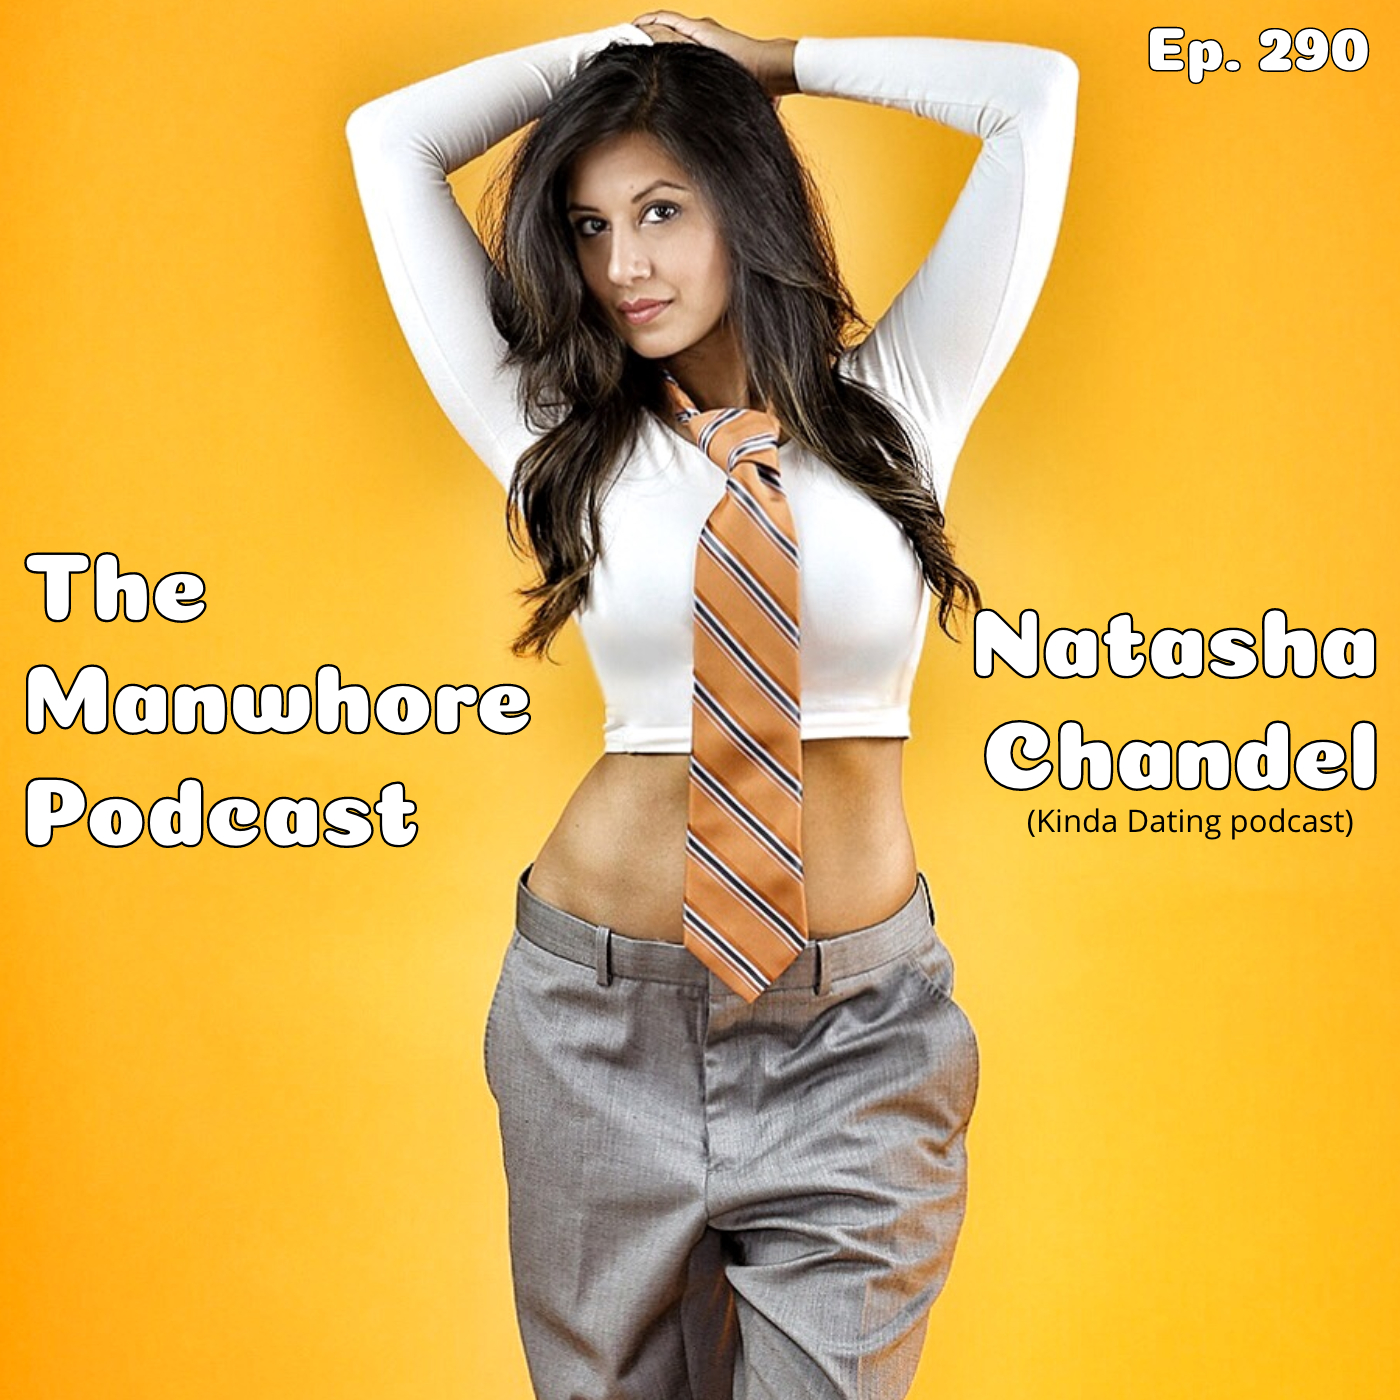 The Manwhore Podcast: A Sex-Positive Quest - Ep. 290: Bro, Keep That Condom On! with Natasha Chandel (Kinda Dating podcast)